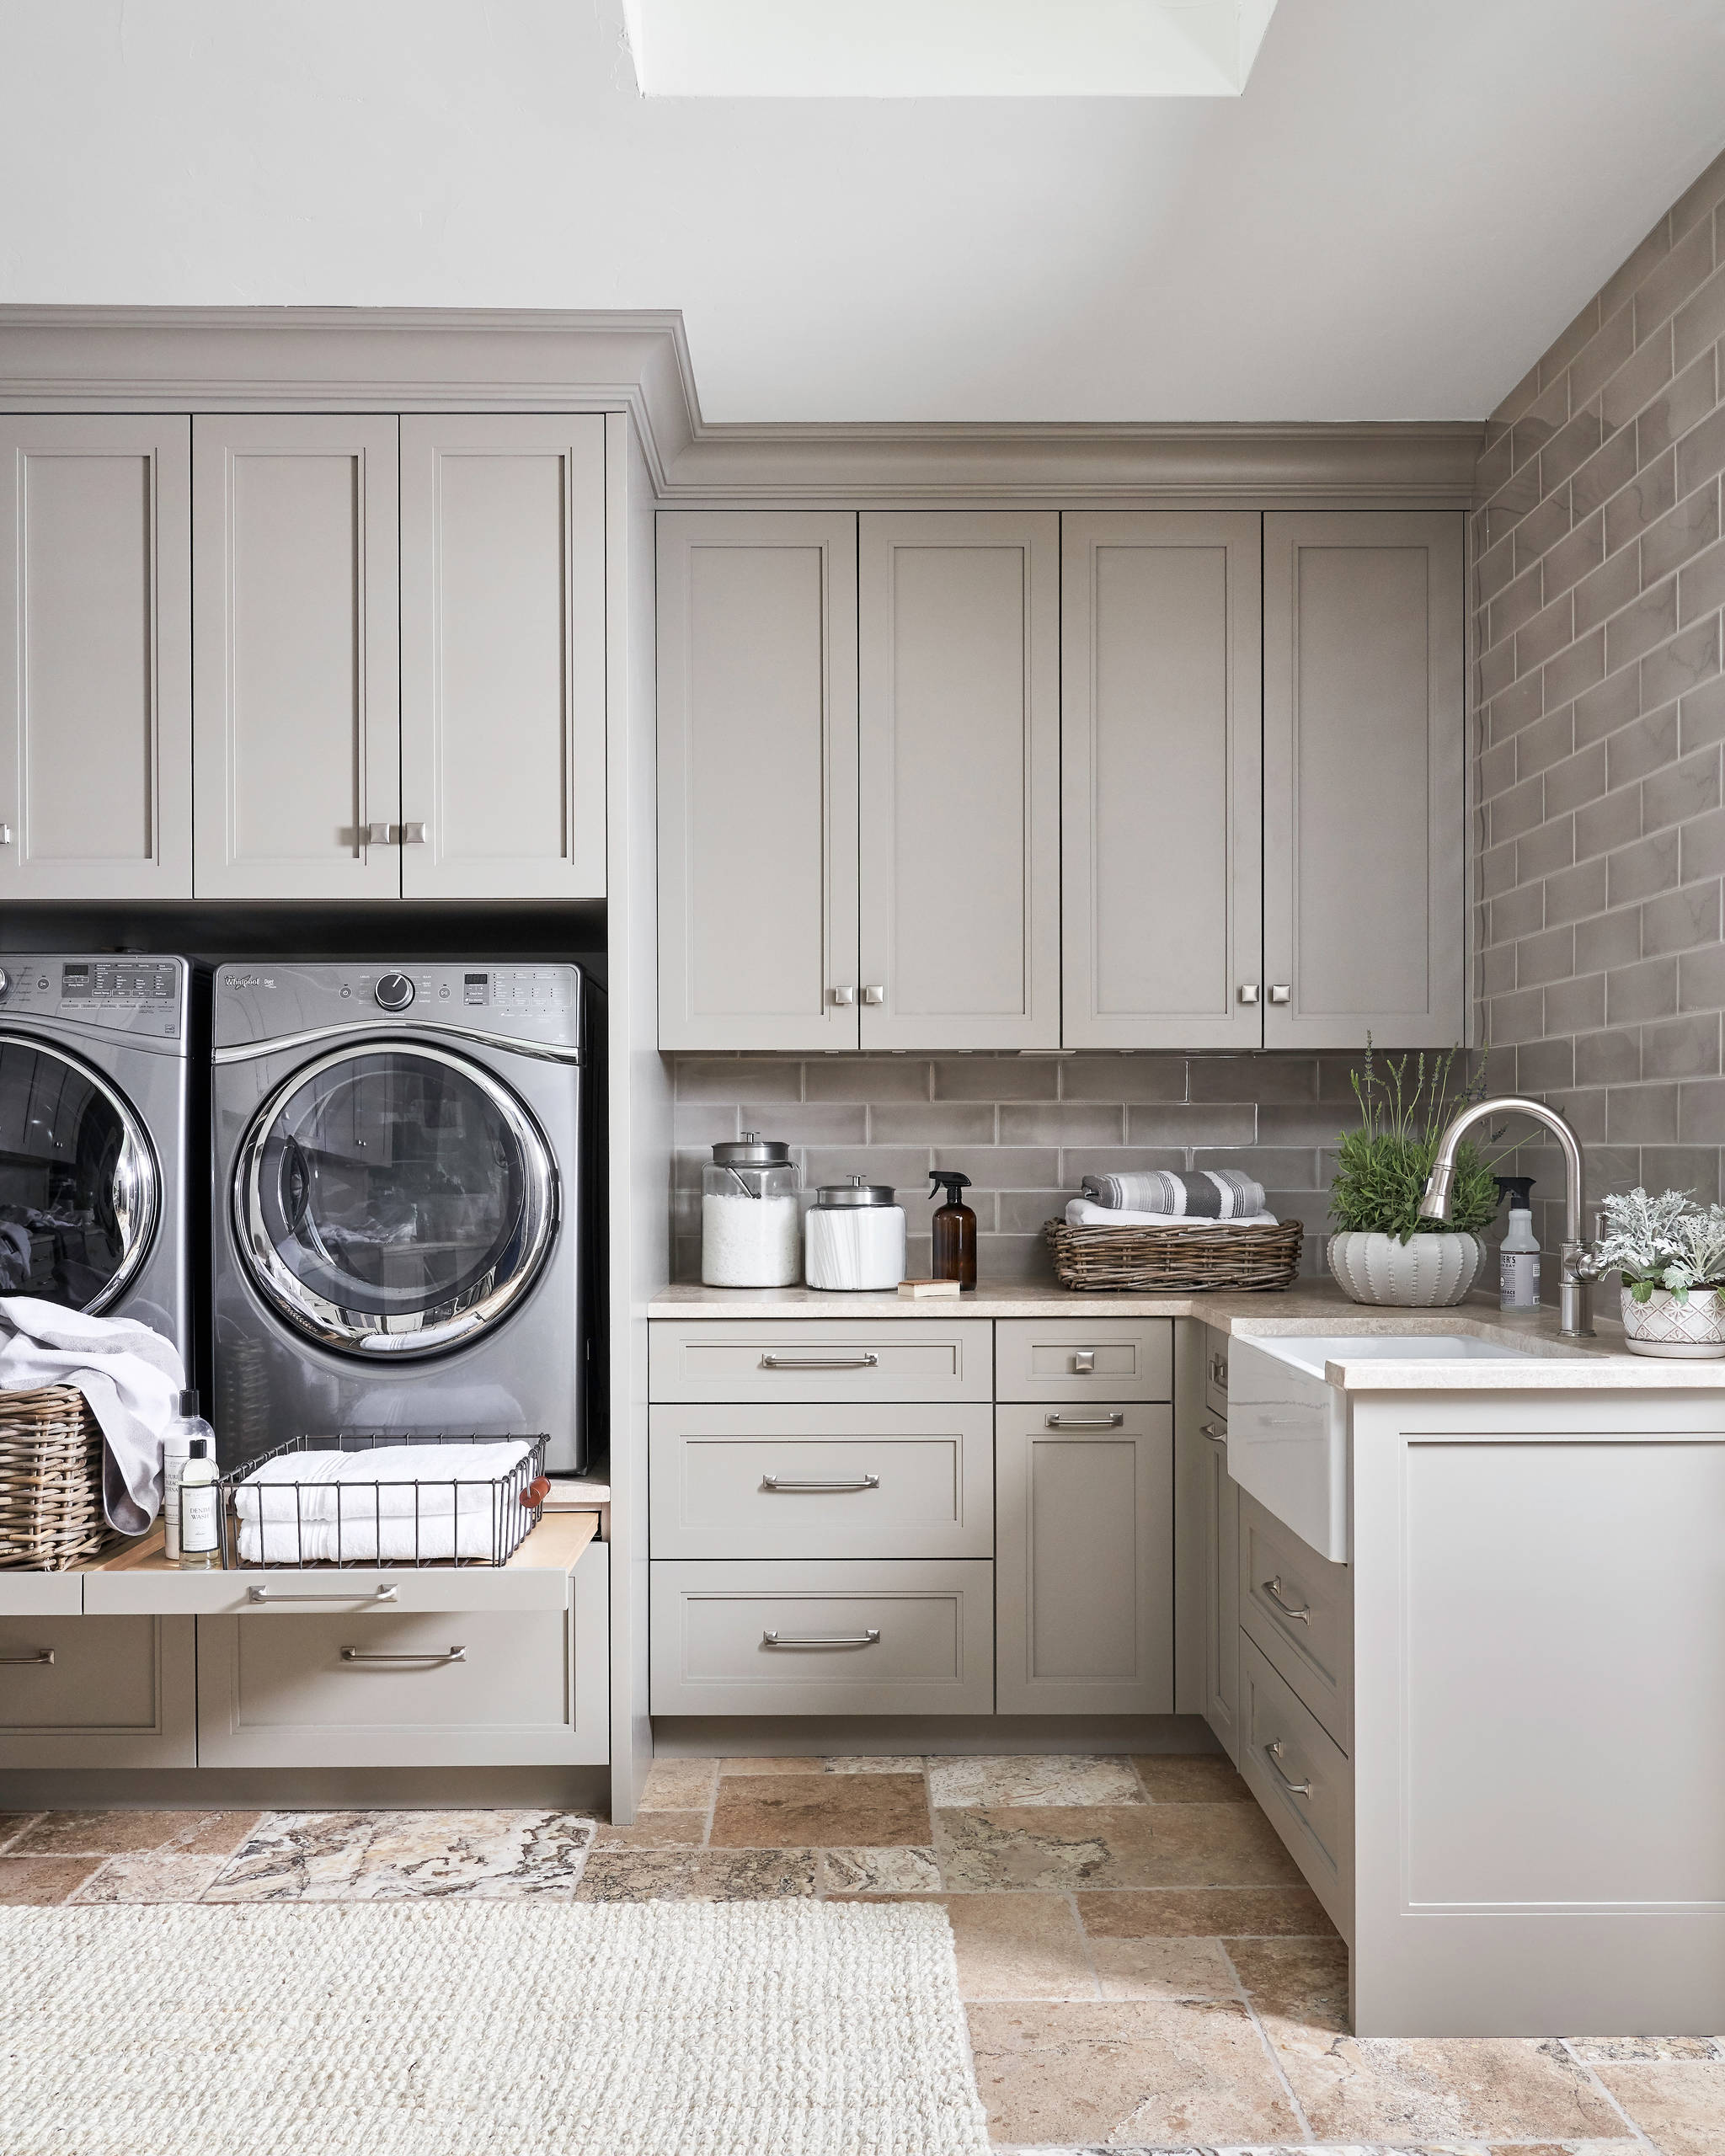 75 Beautiful Large Laundry Room Pictures Ideas February 2021 Houzz